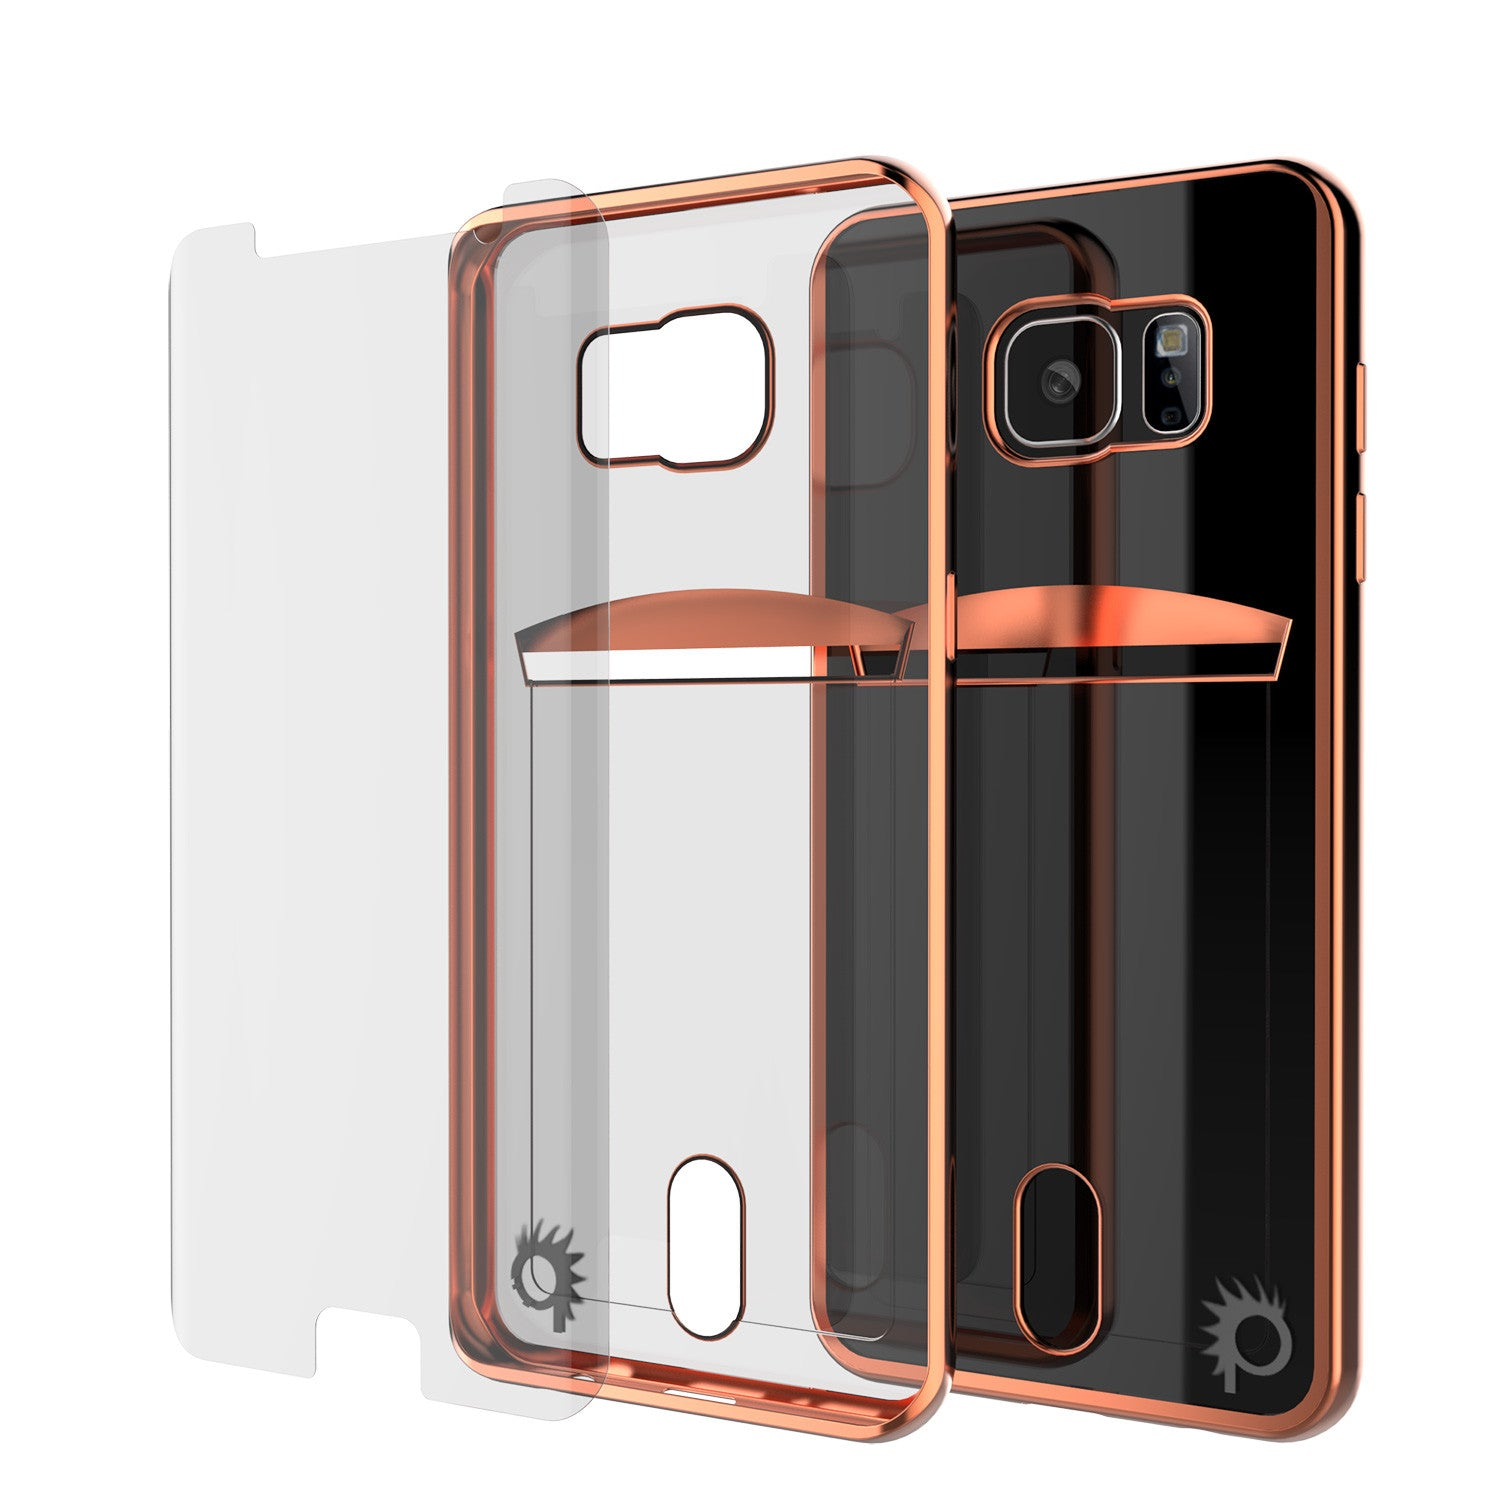 Galaxy S6 Case, PUNKCASE® LUCID Rose Gold Series | Card Slot | SHIELD Screen Protector | Ultra fit